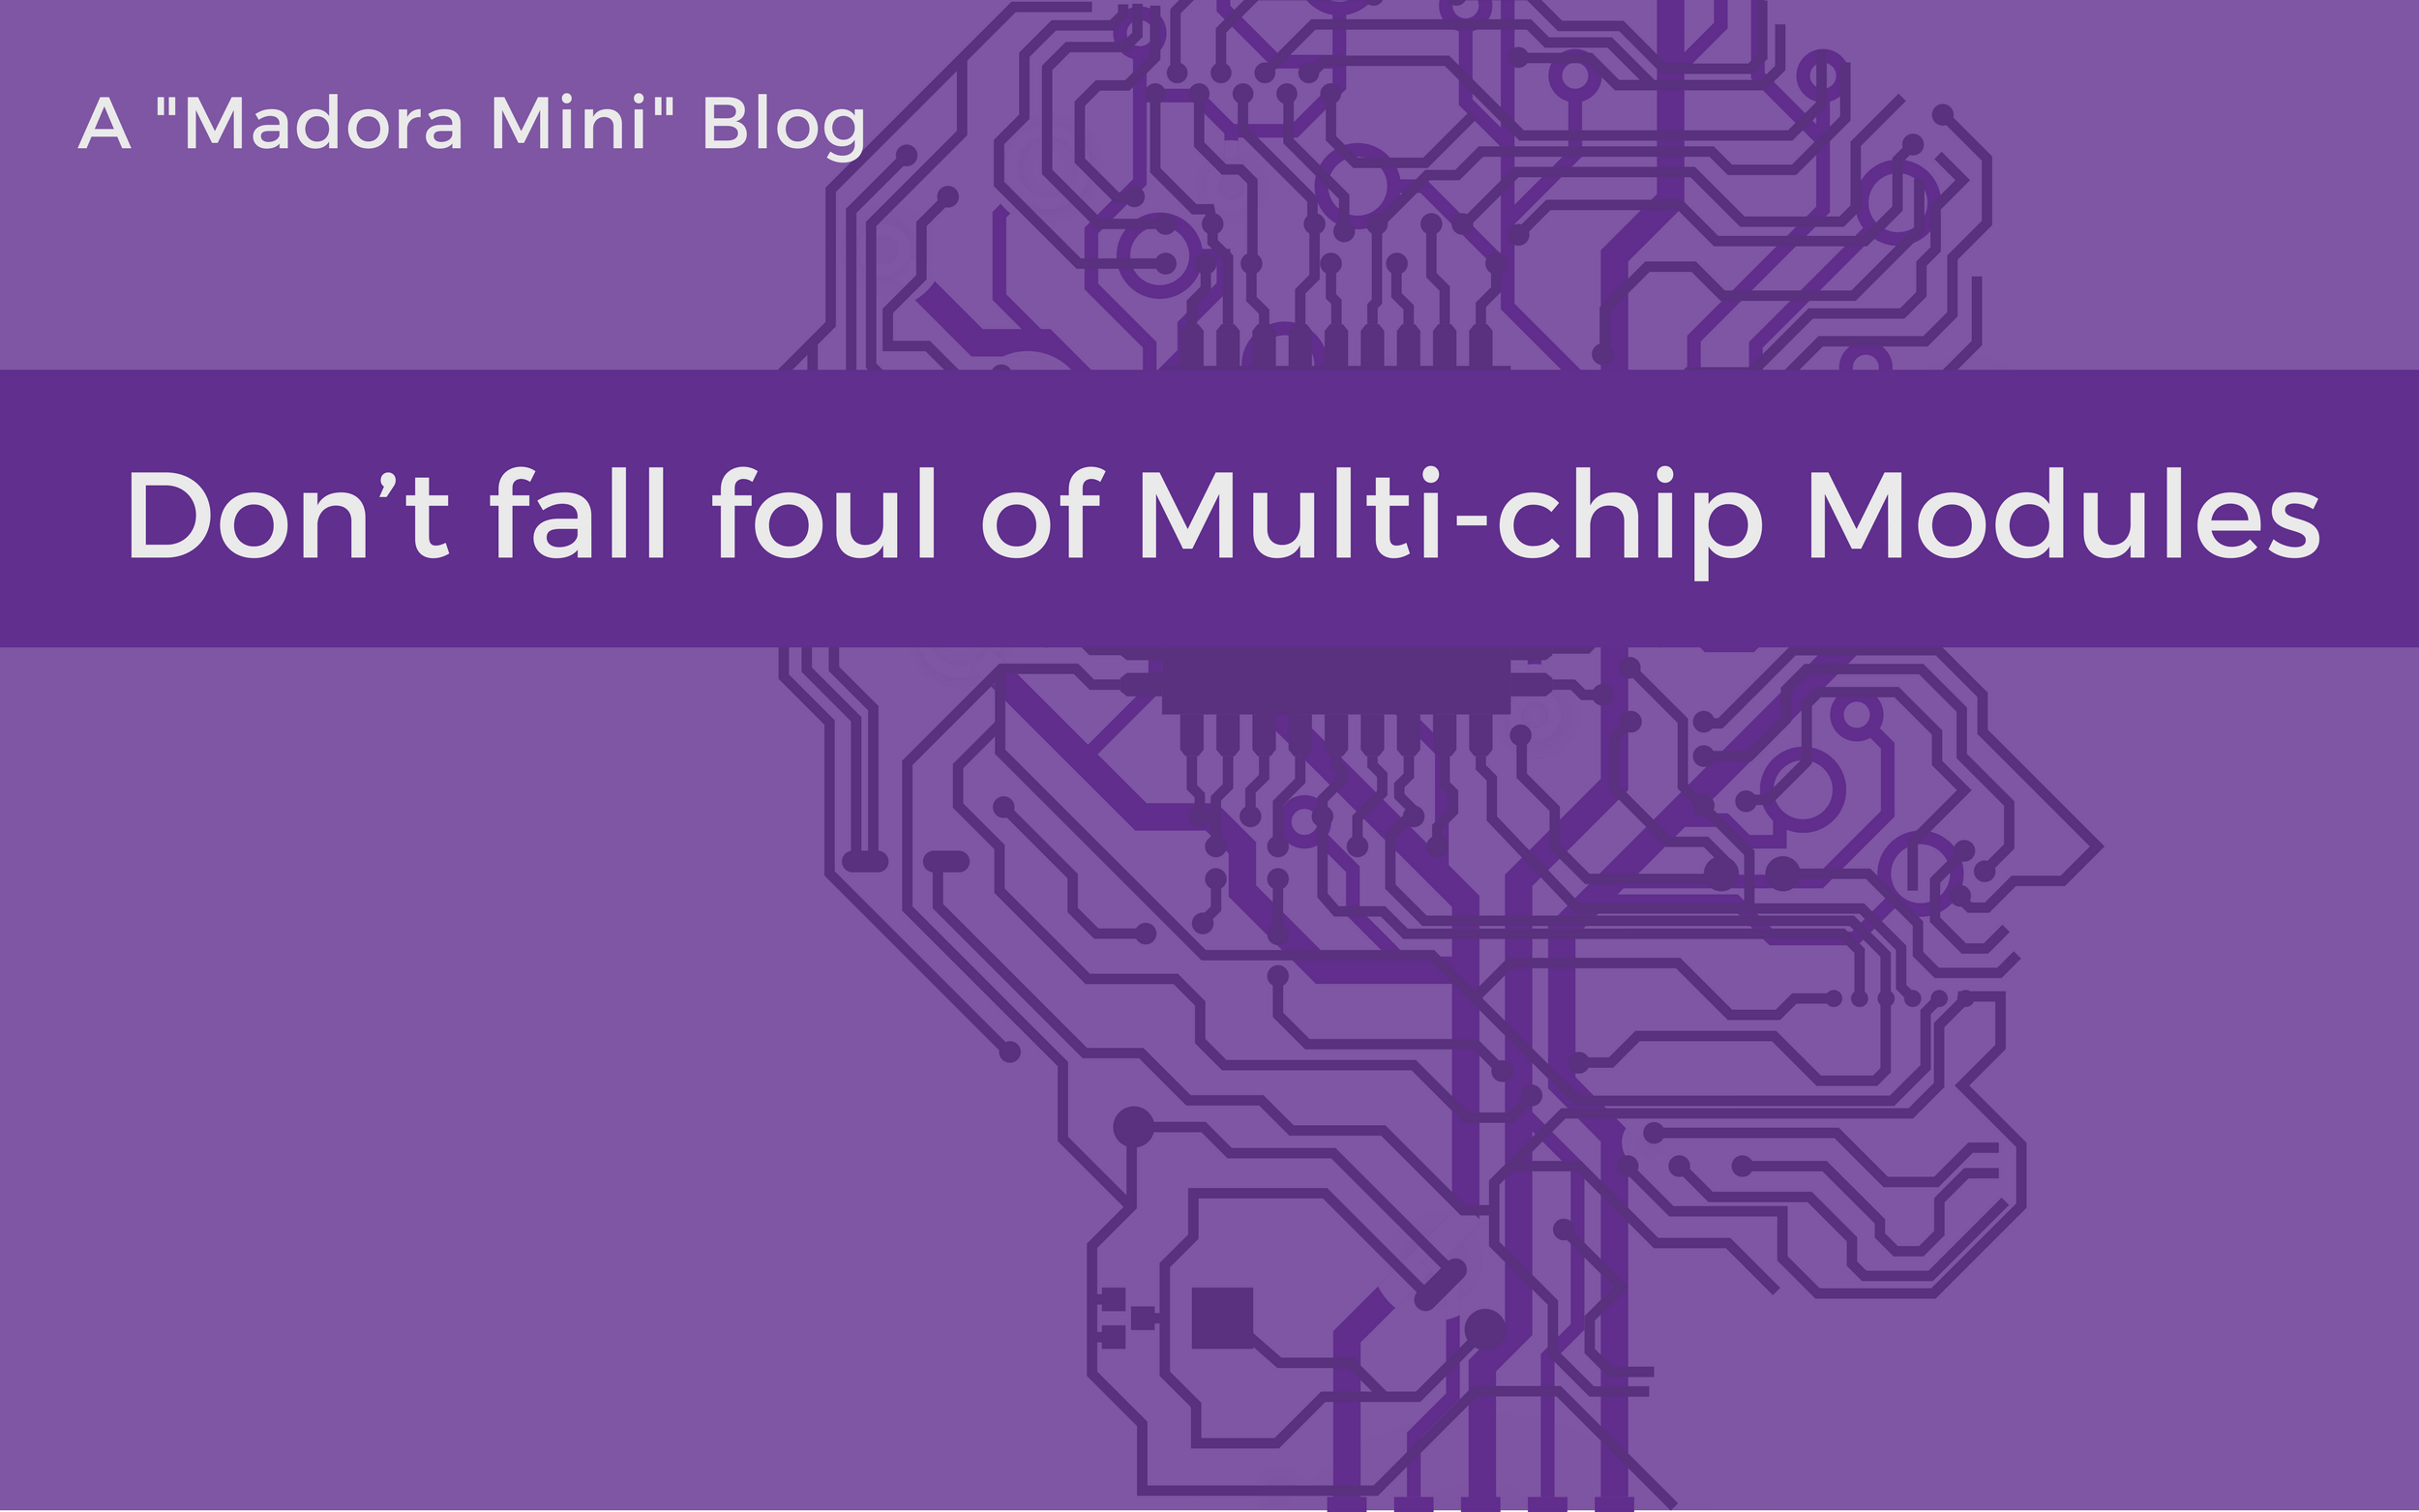 Don't fall foul of Multi-chip Modules